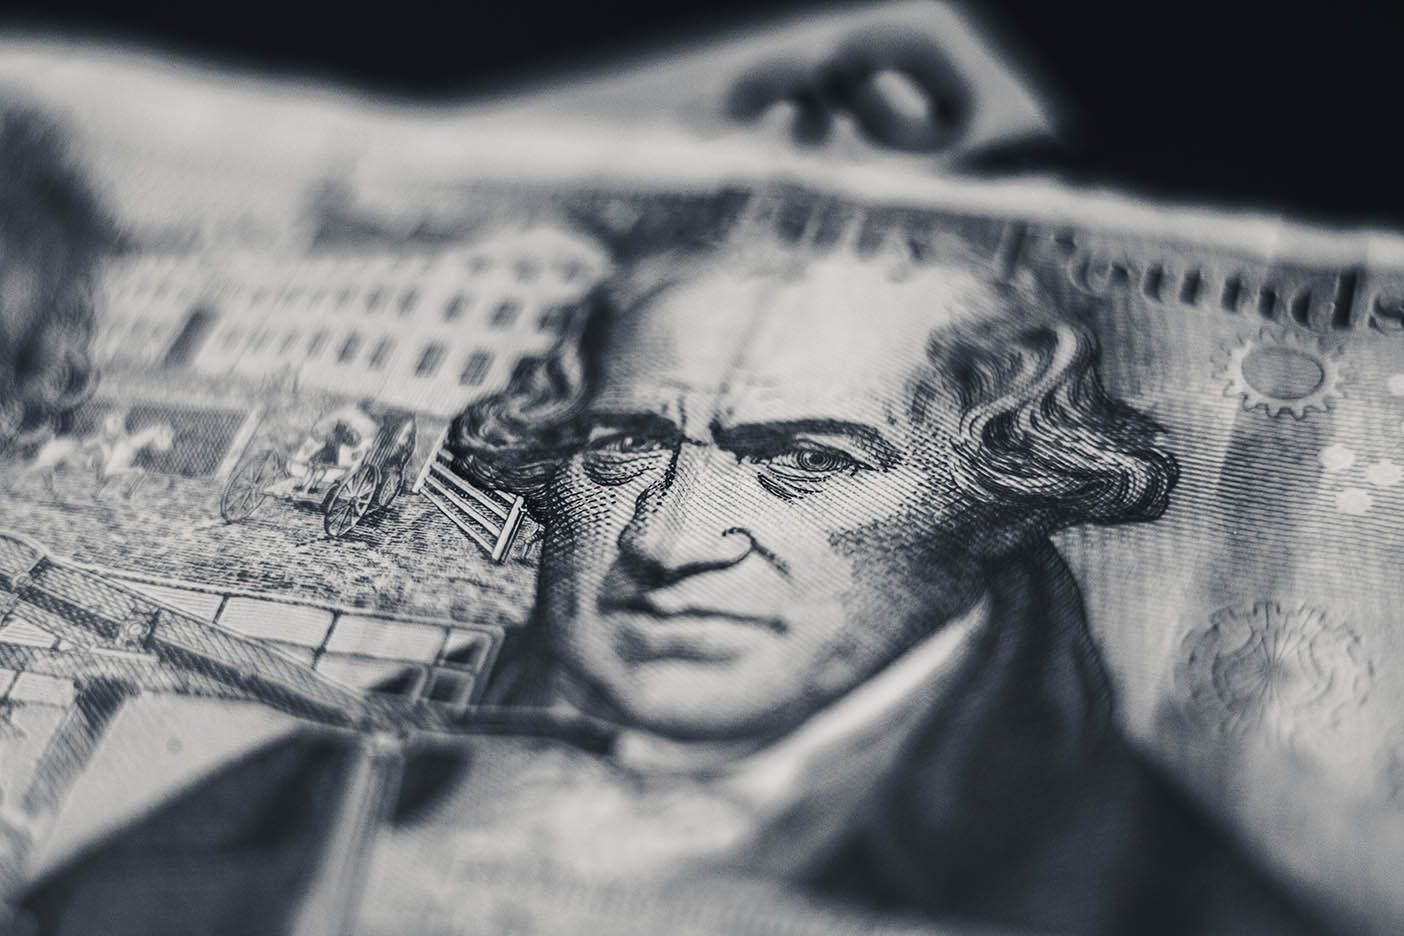 https://www.poundsterlinglive.com/images/stock/pound-note-black-and-white-close-up.jpg